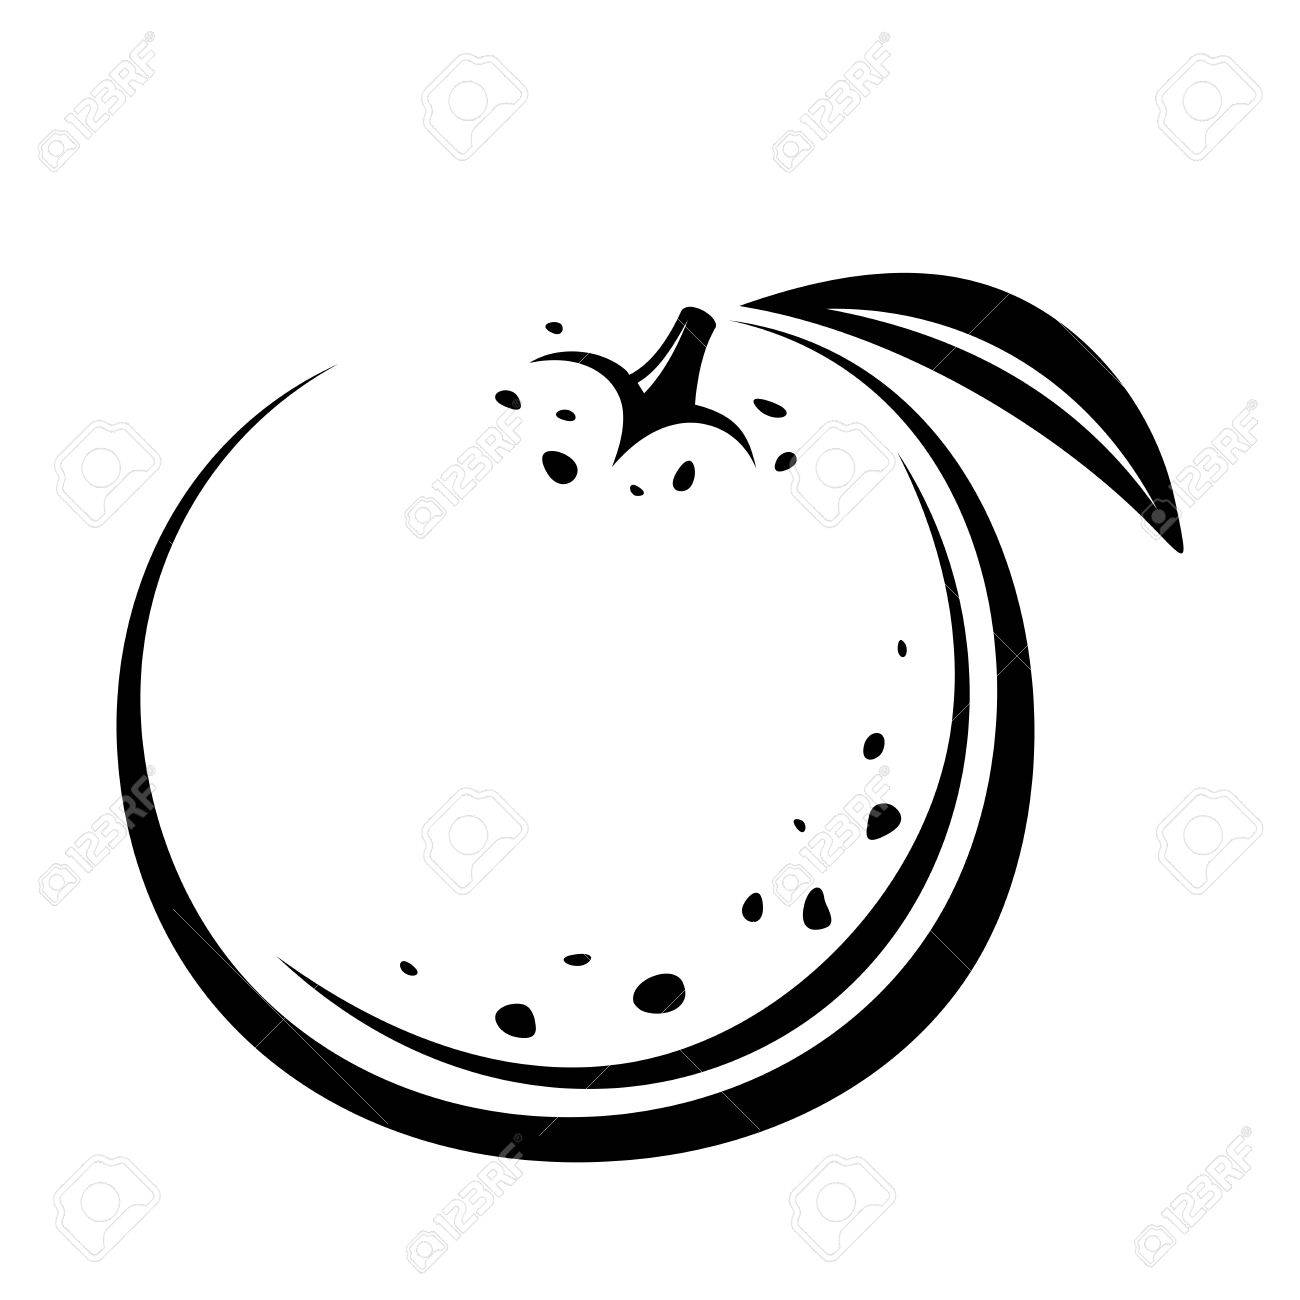 Orange Fruit. Vector Black Contour Drawing. Royalty Free Cliparts ... for Drawing Orange Fruit  29jwn